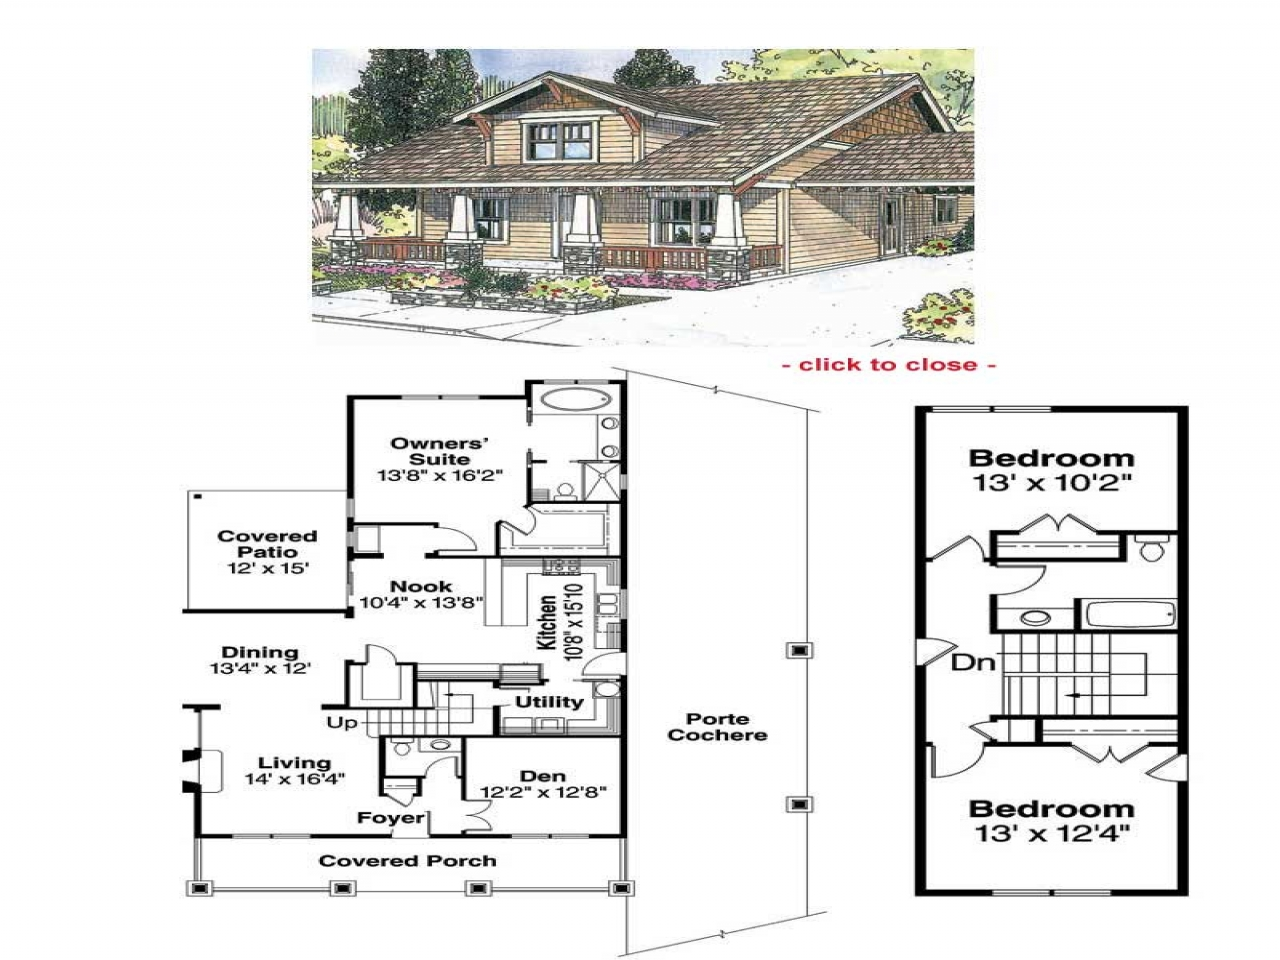 Craftsman bungalow plans find house plans vintage for Vintage bungalow house plans